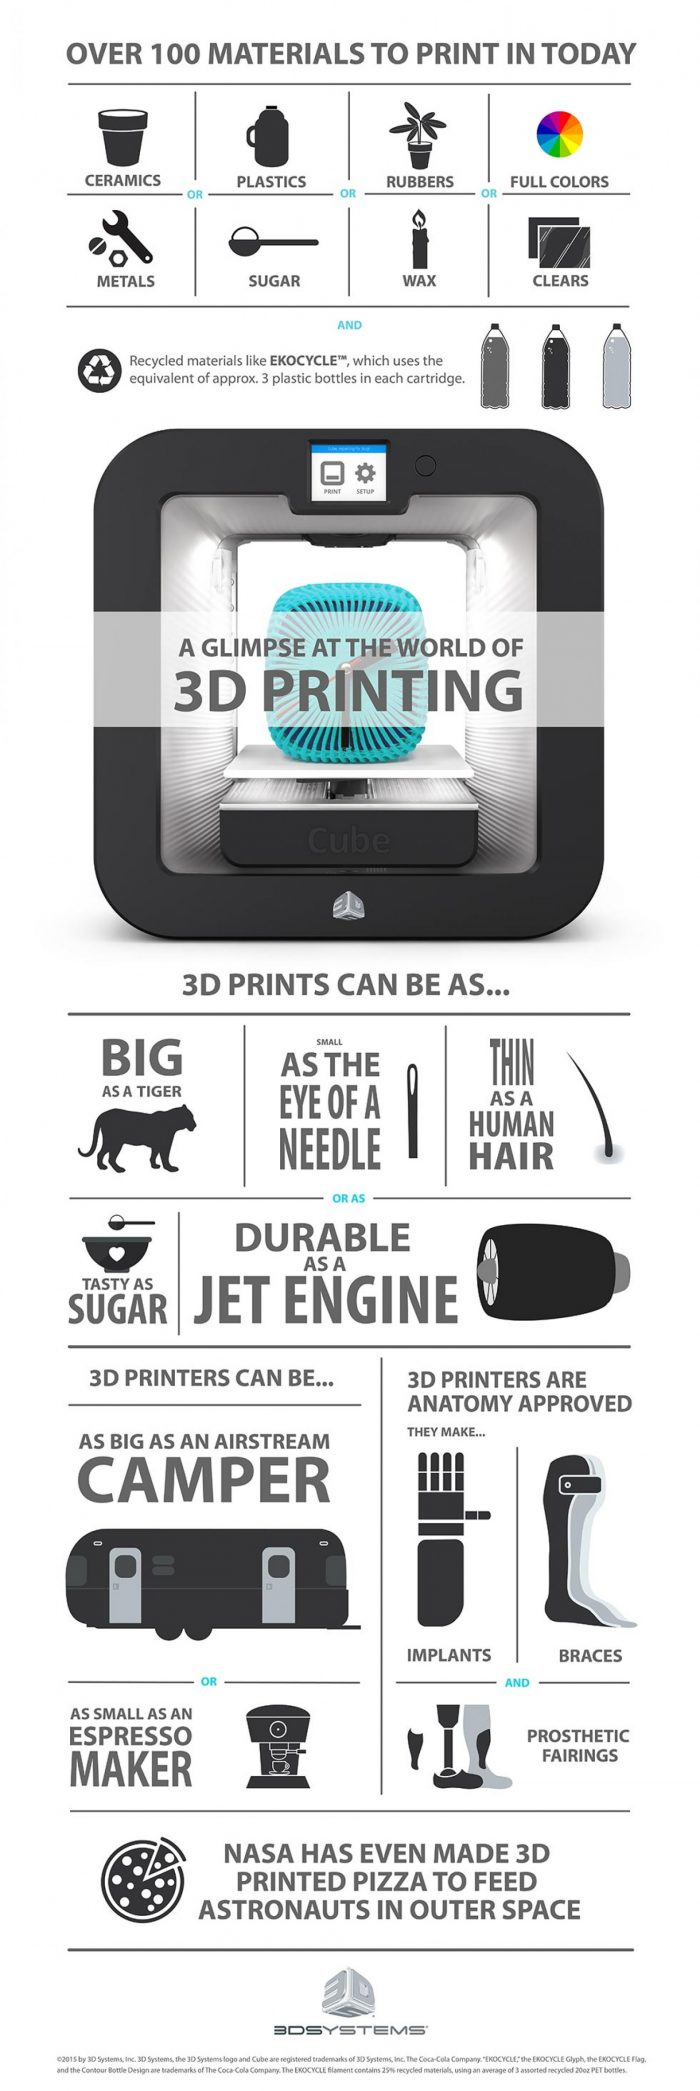 3D Printing Business Ideas